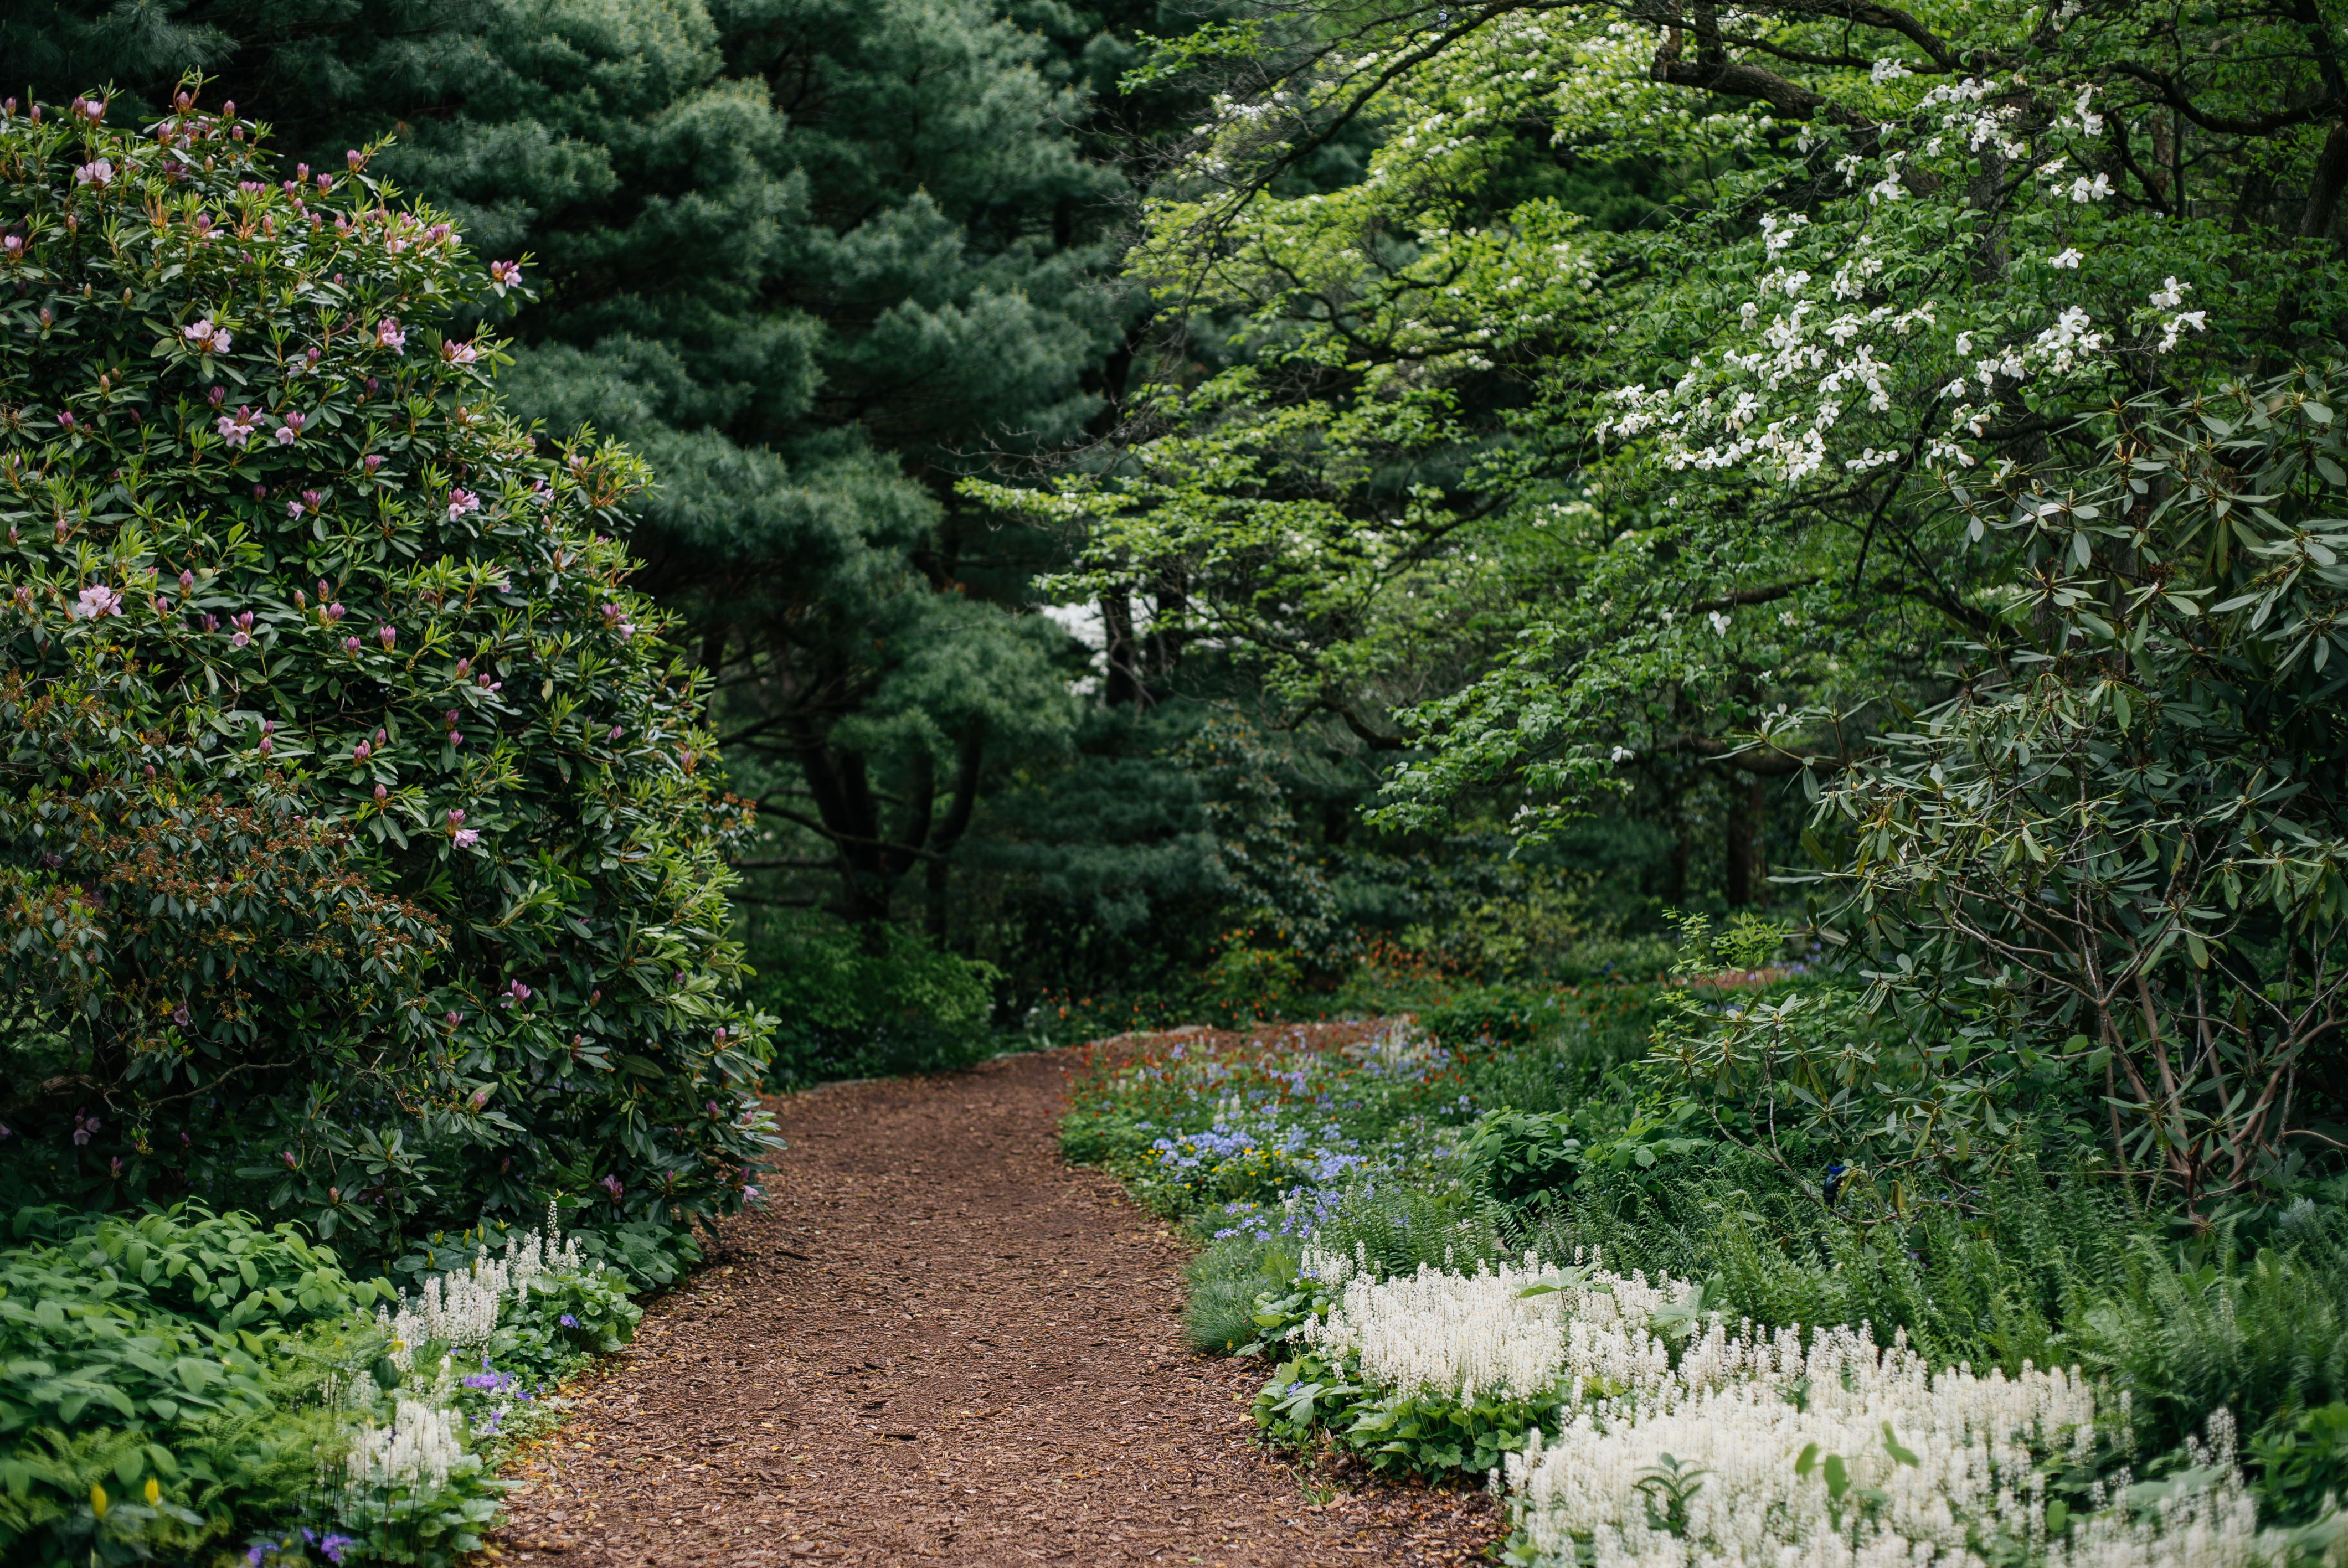 View of the mulched West Slope Path with surrounding native trees and plants